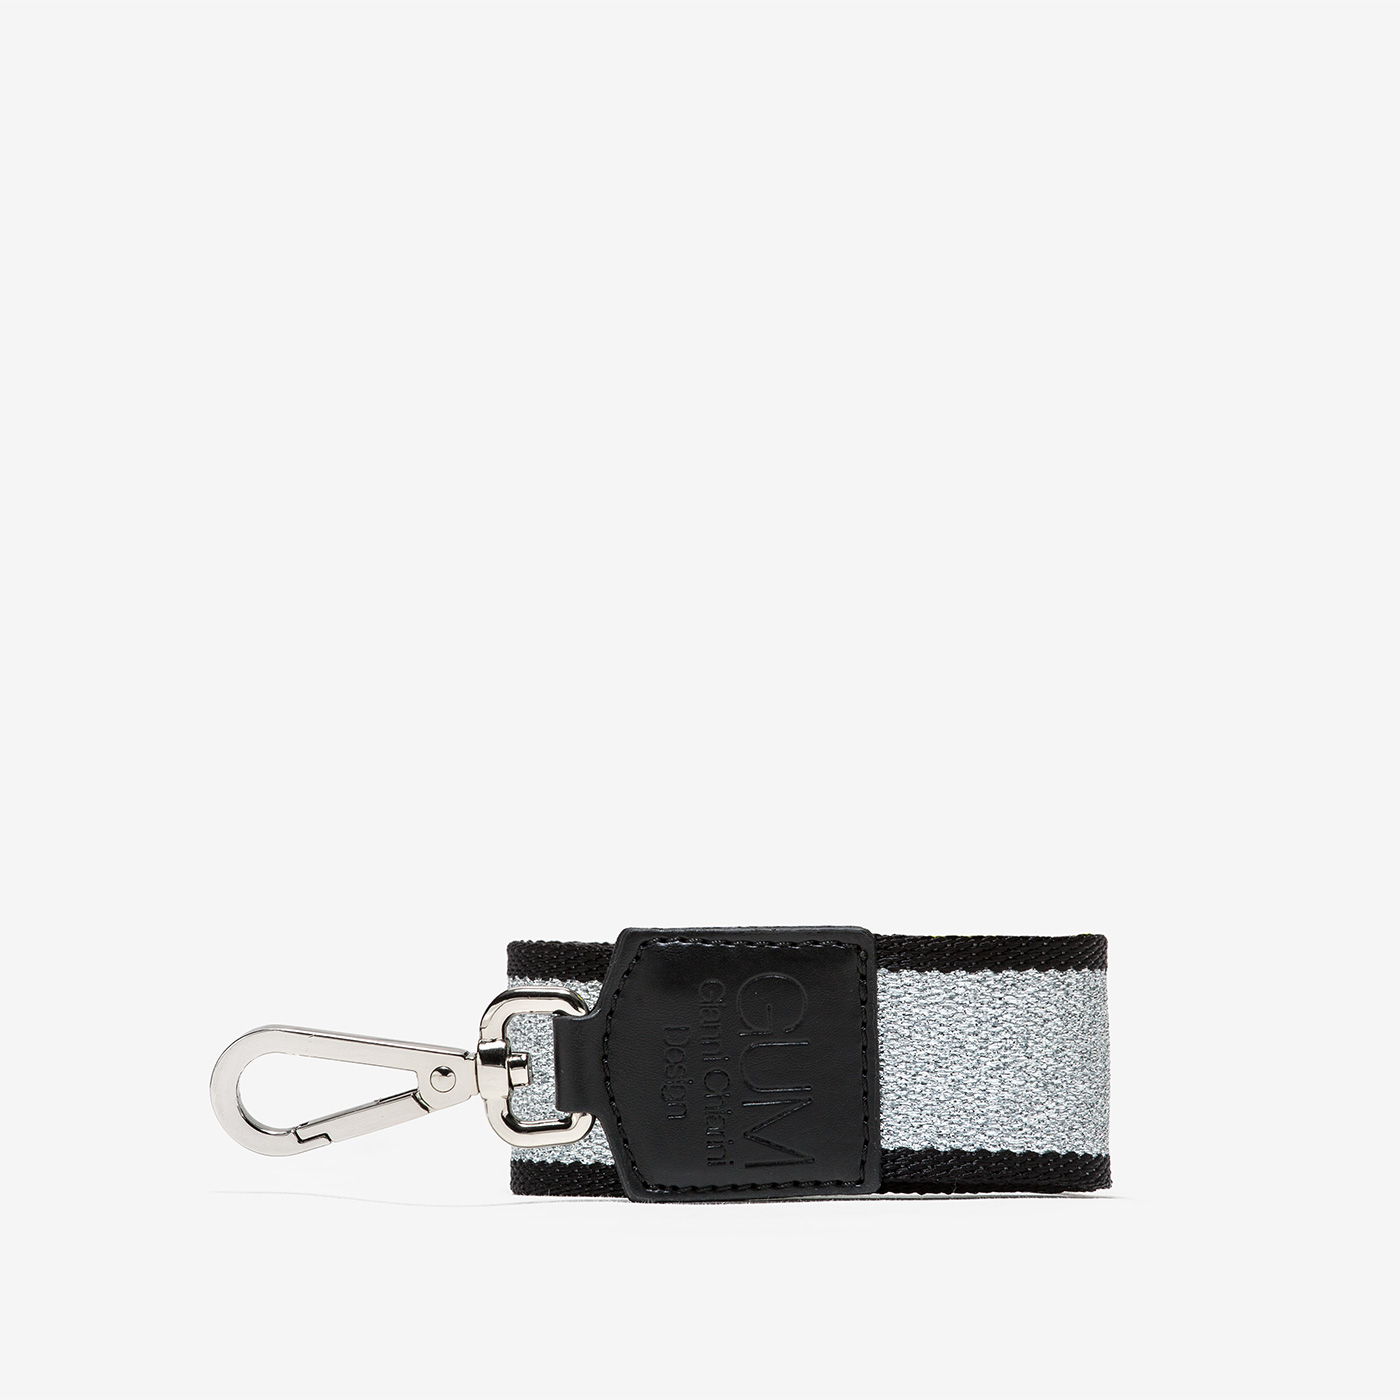 GUM: FIXED-SIZE SHOULDER STRAP WITH LUREX